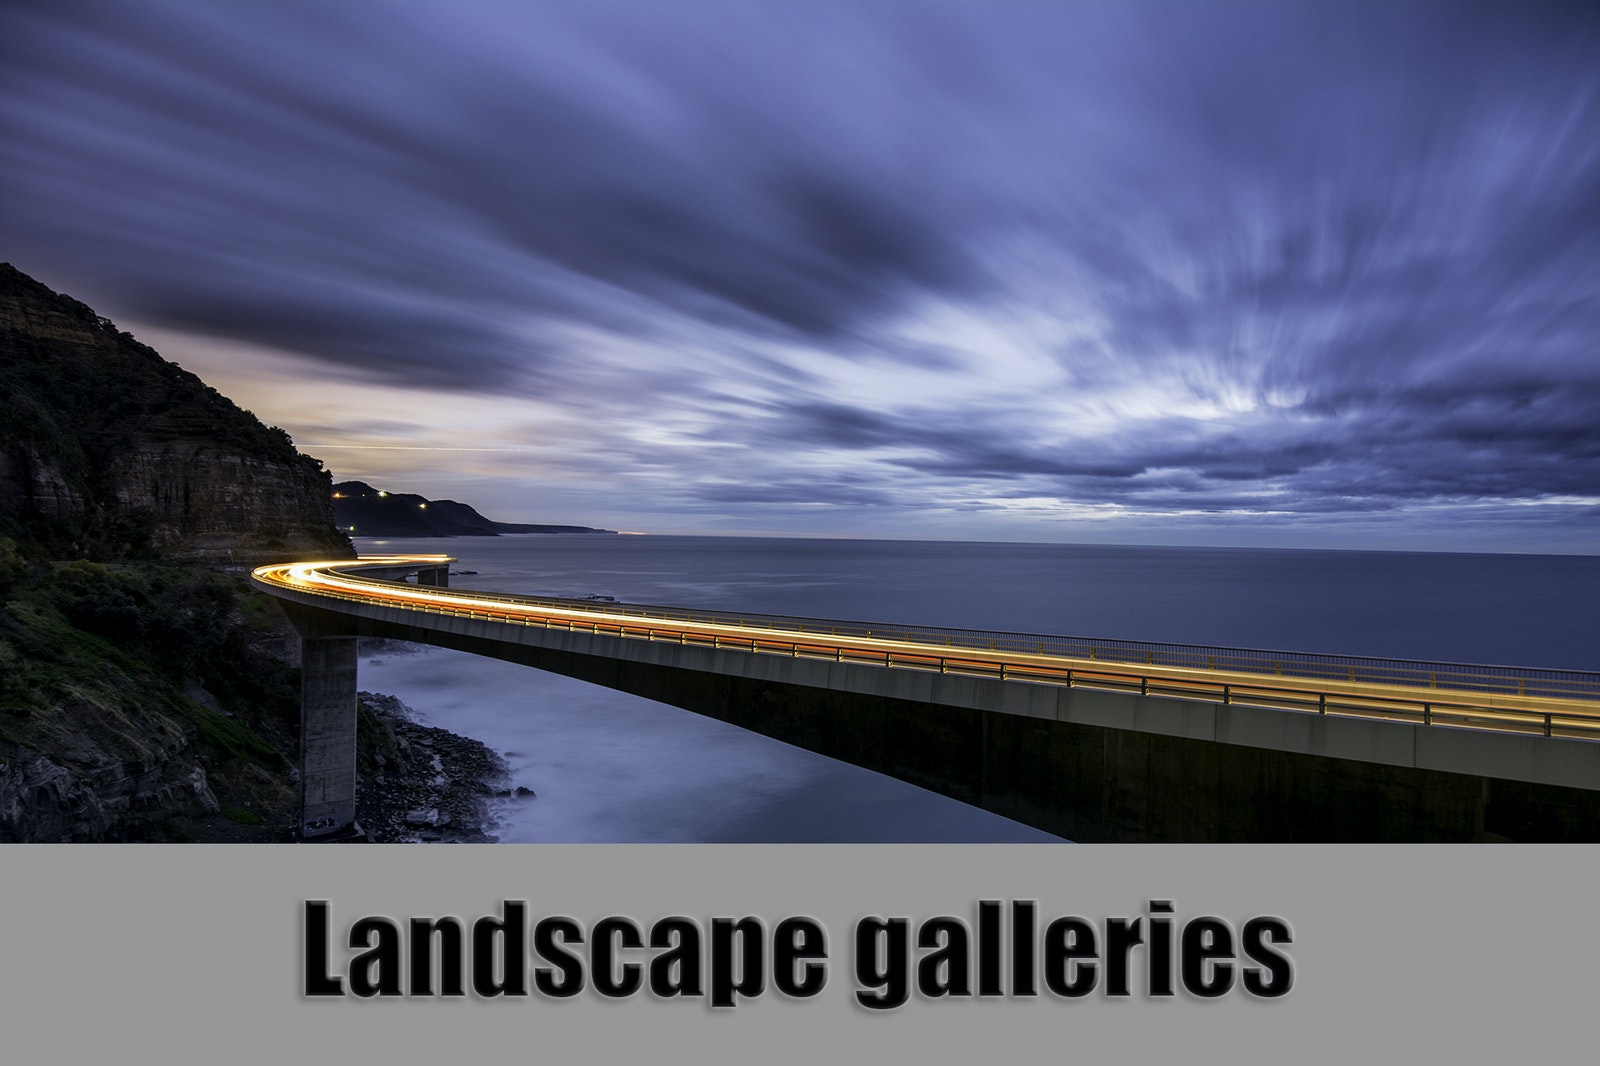 landscape galleries